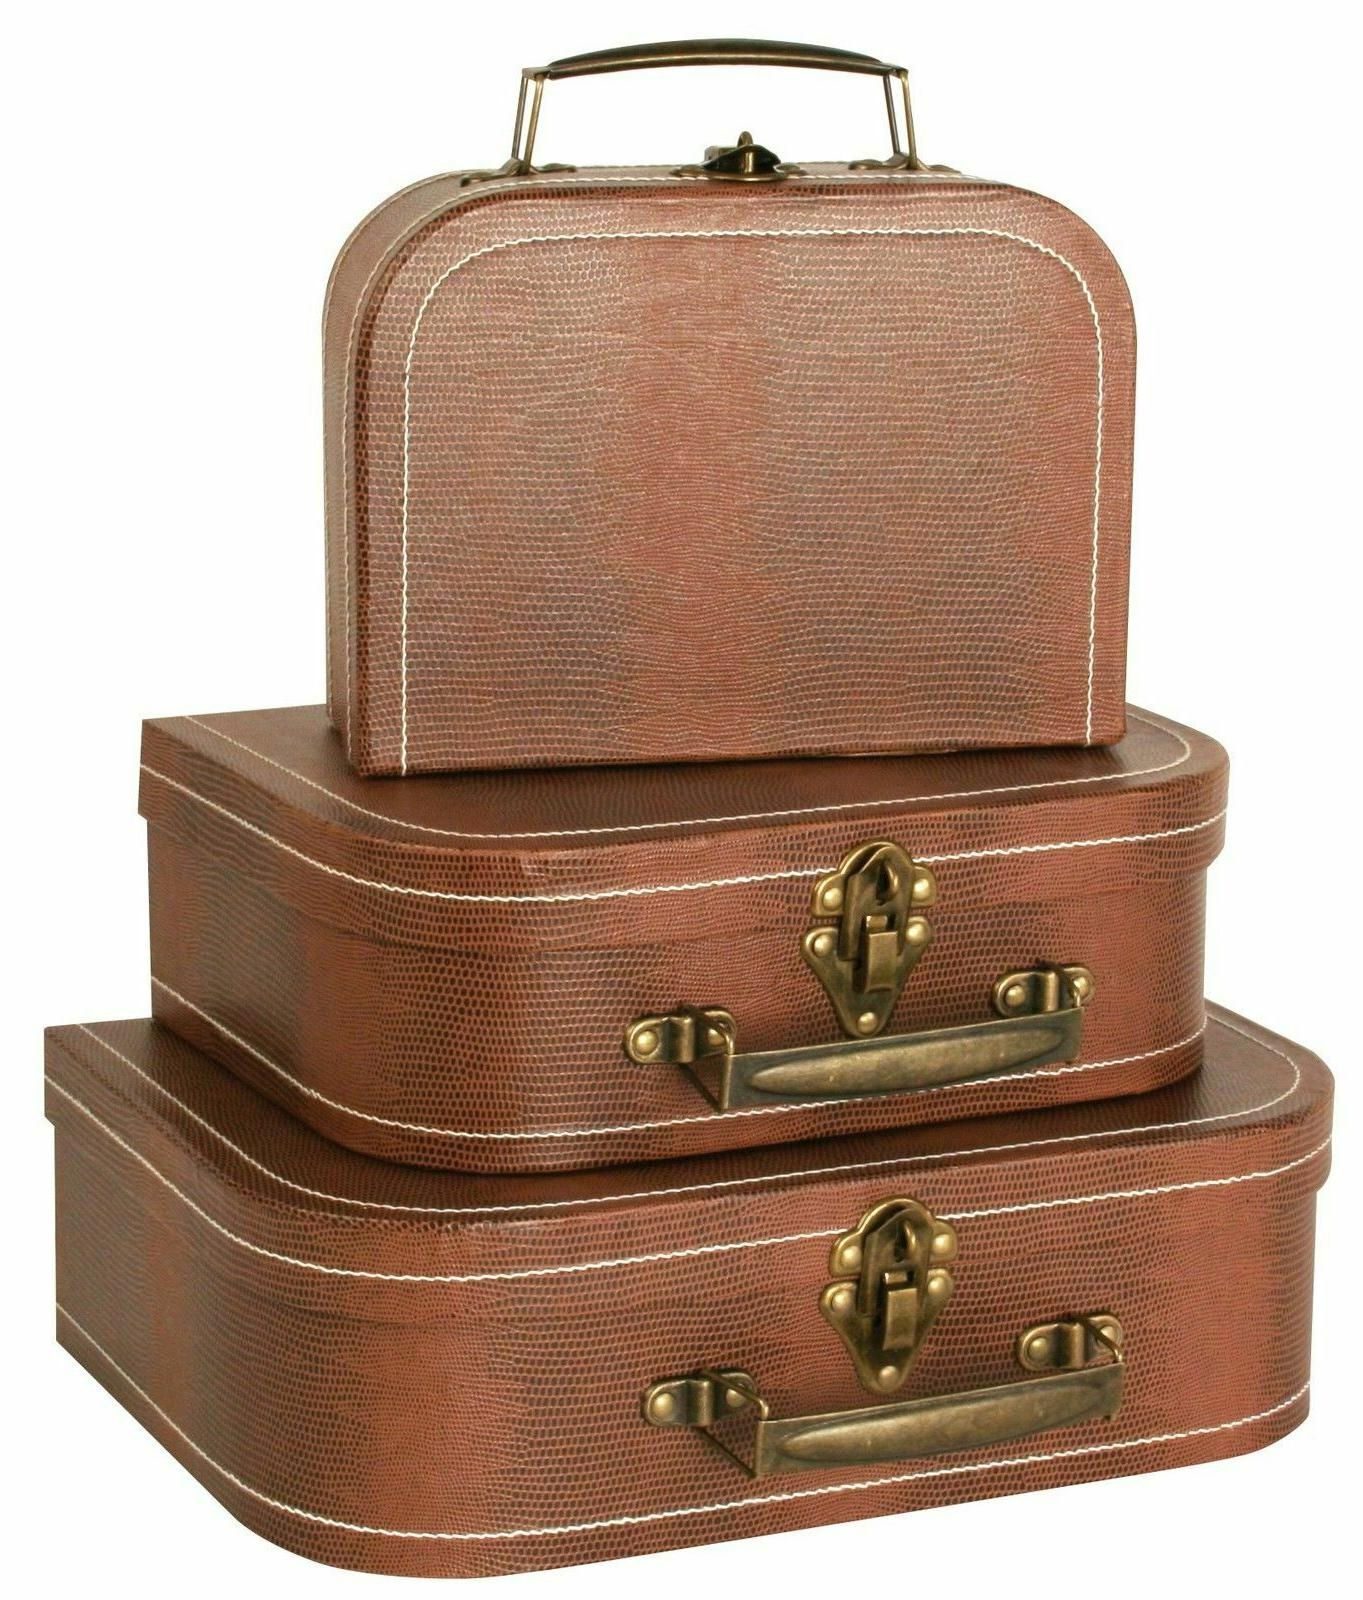 Vintage Suitcases Luggage Travel Set Antique Trunk Chest Box